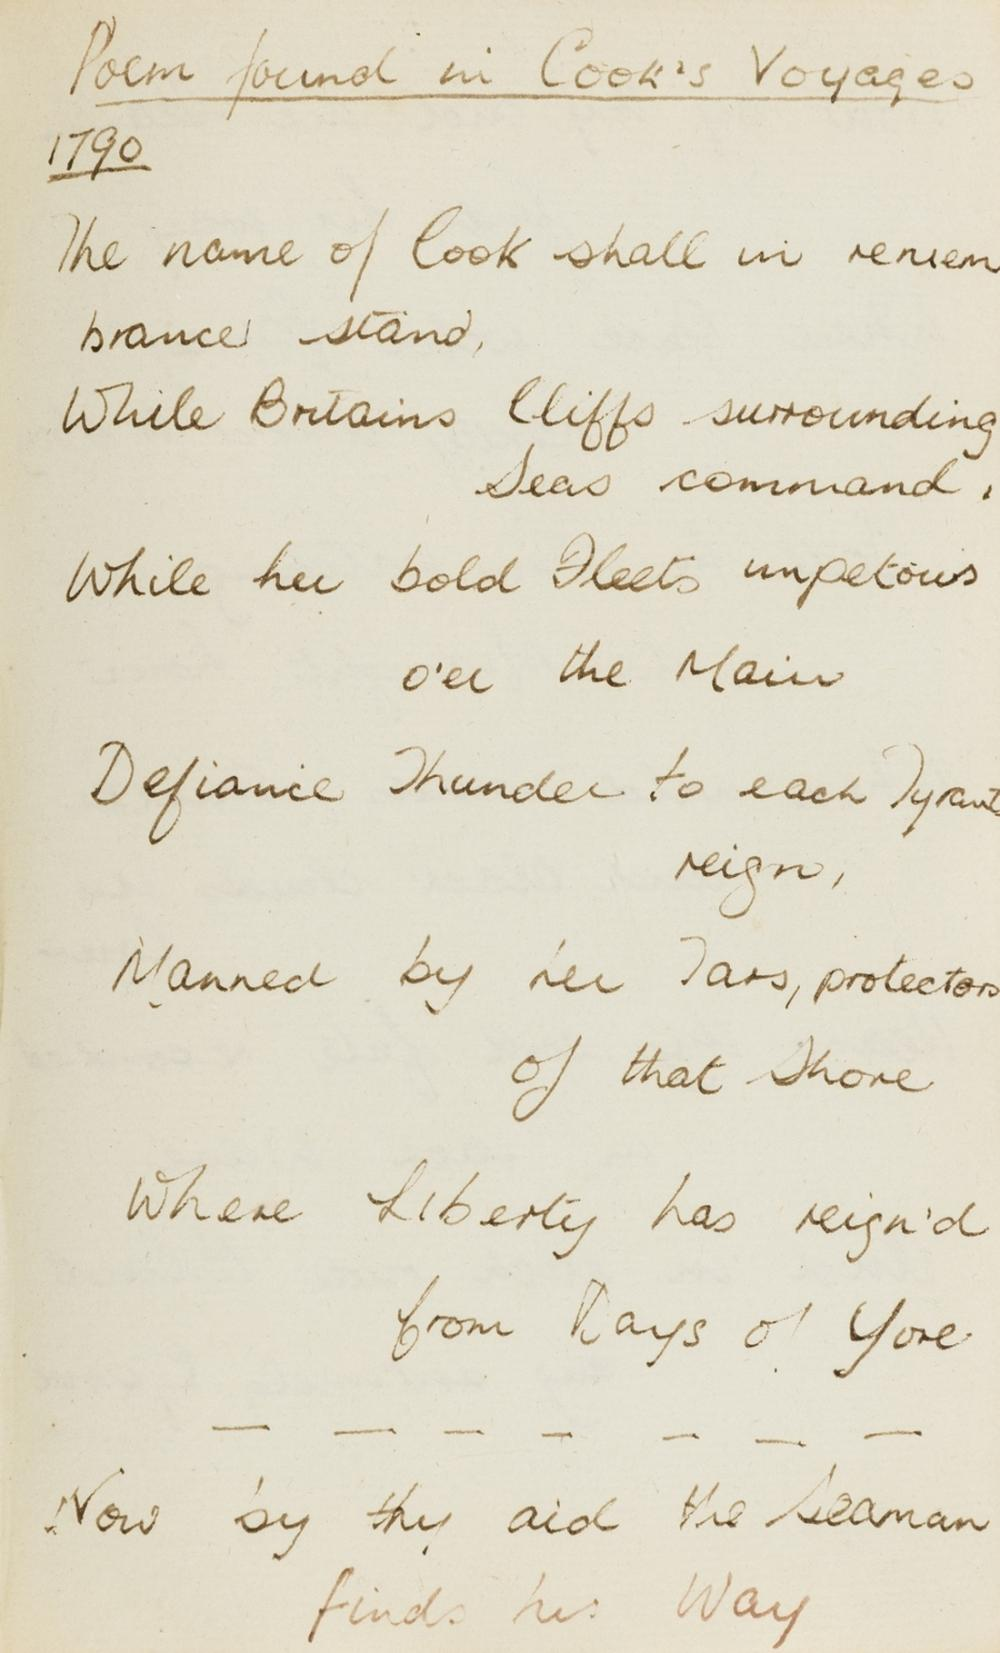 Cook (Captain James) & Arthur O'Connor.- Commonplace bookof poetry and prose, including an unpublished poem on Captain Cook, a poem by the Irish nationalist Arthur O'Connor & a treatise on card …